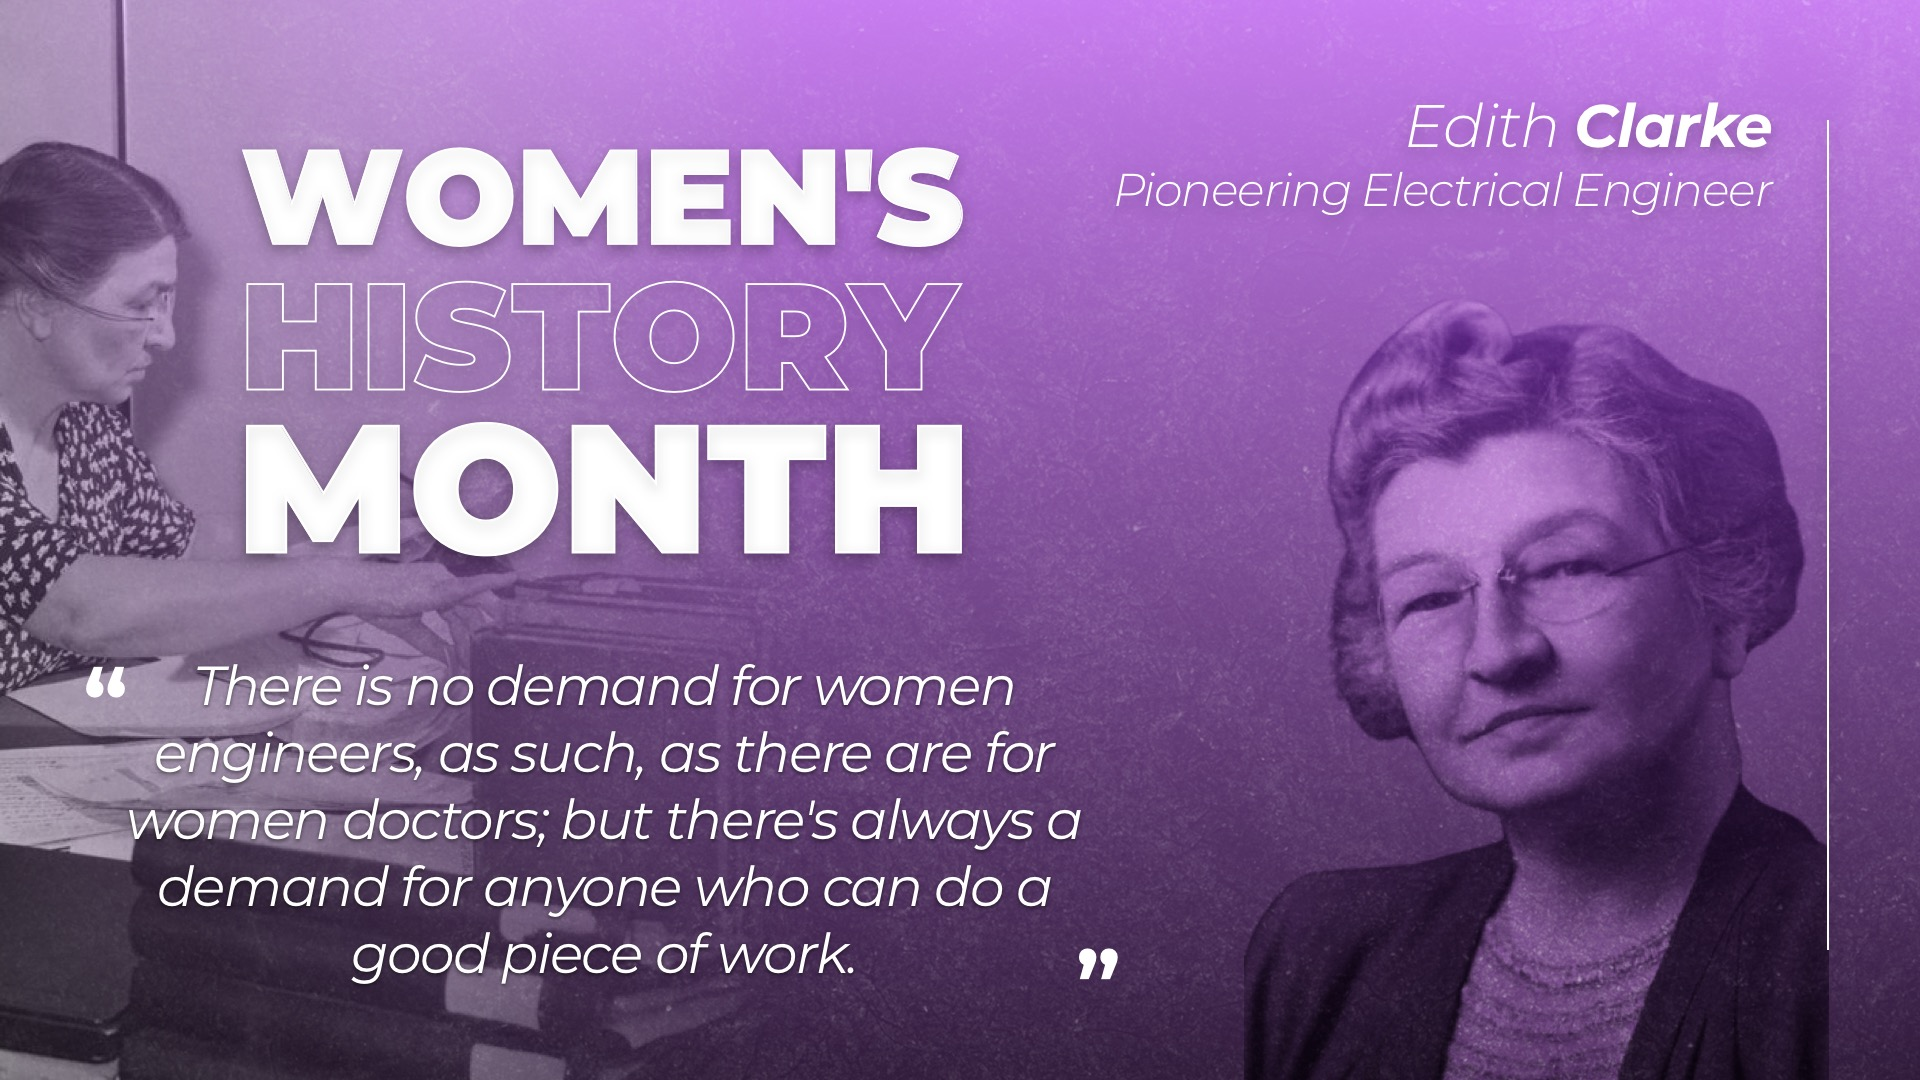 Women's History Month Posters Edith Clarke